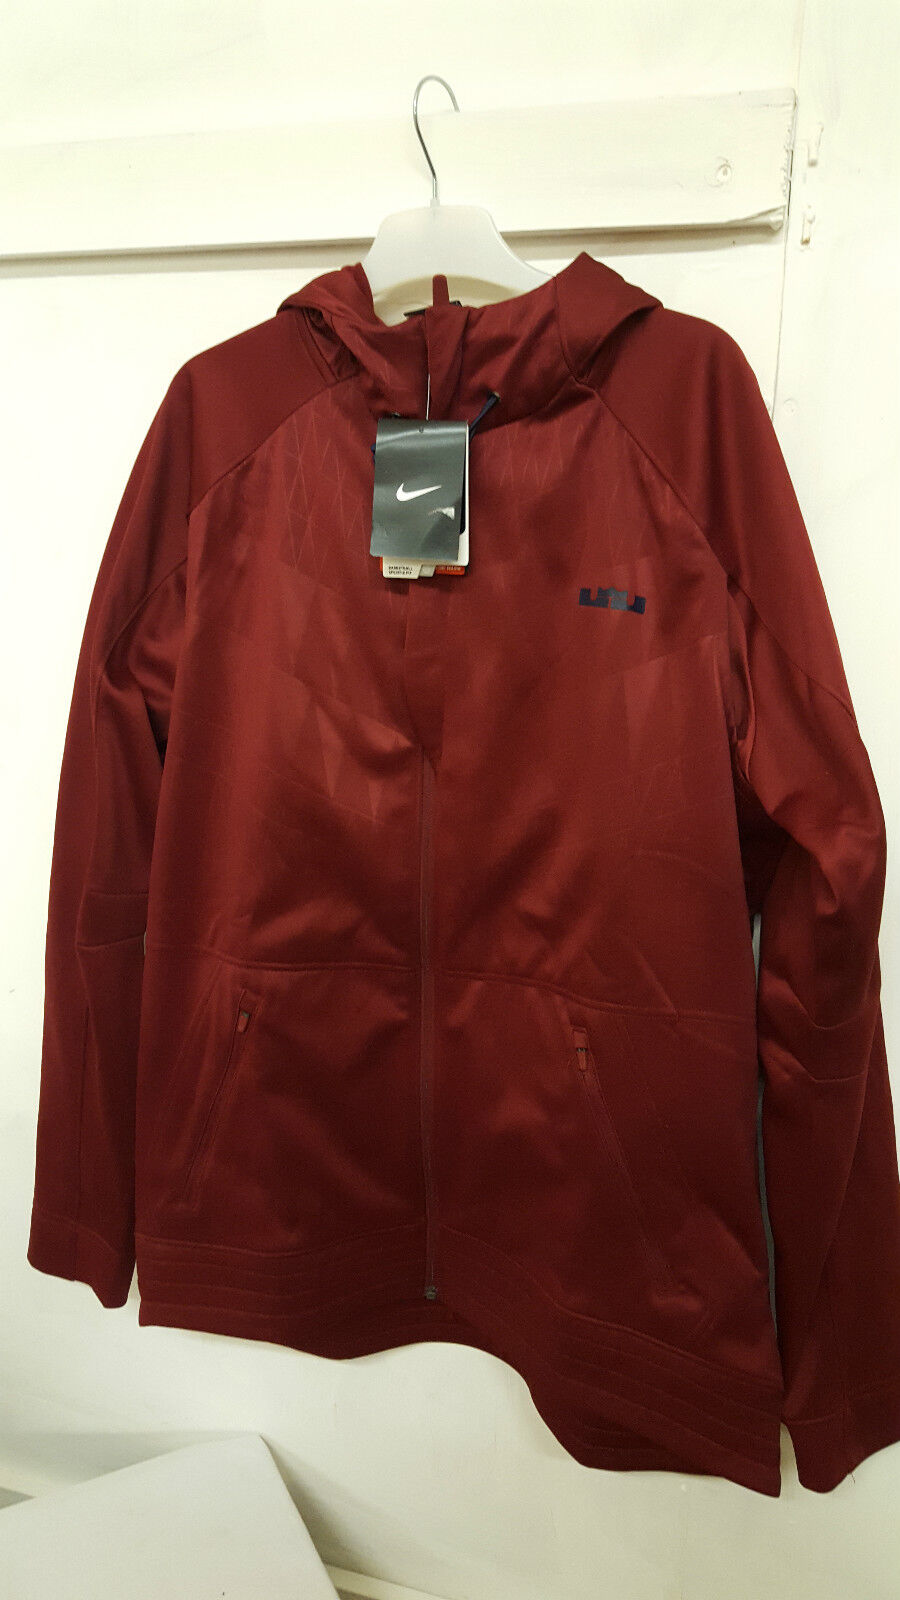 NEW NIKE MENS rot ZIP LEBRON ULTIMATE HYPERLITE HOODIE JACKET TOP REF 686152 677